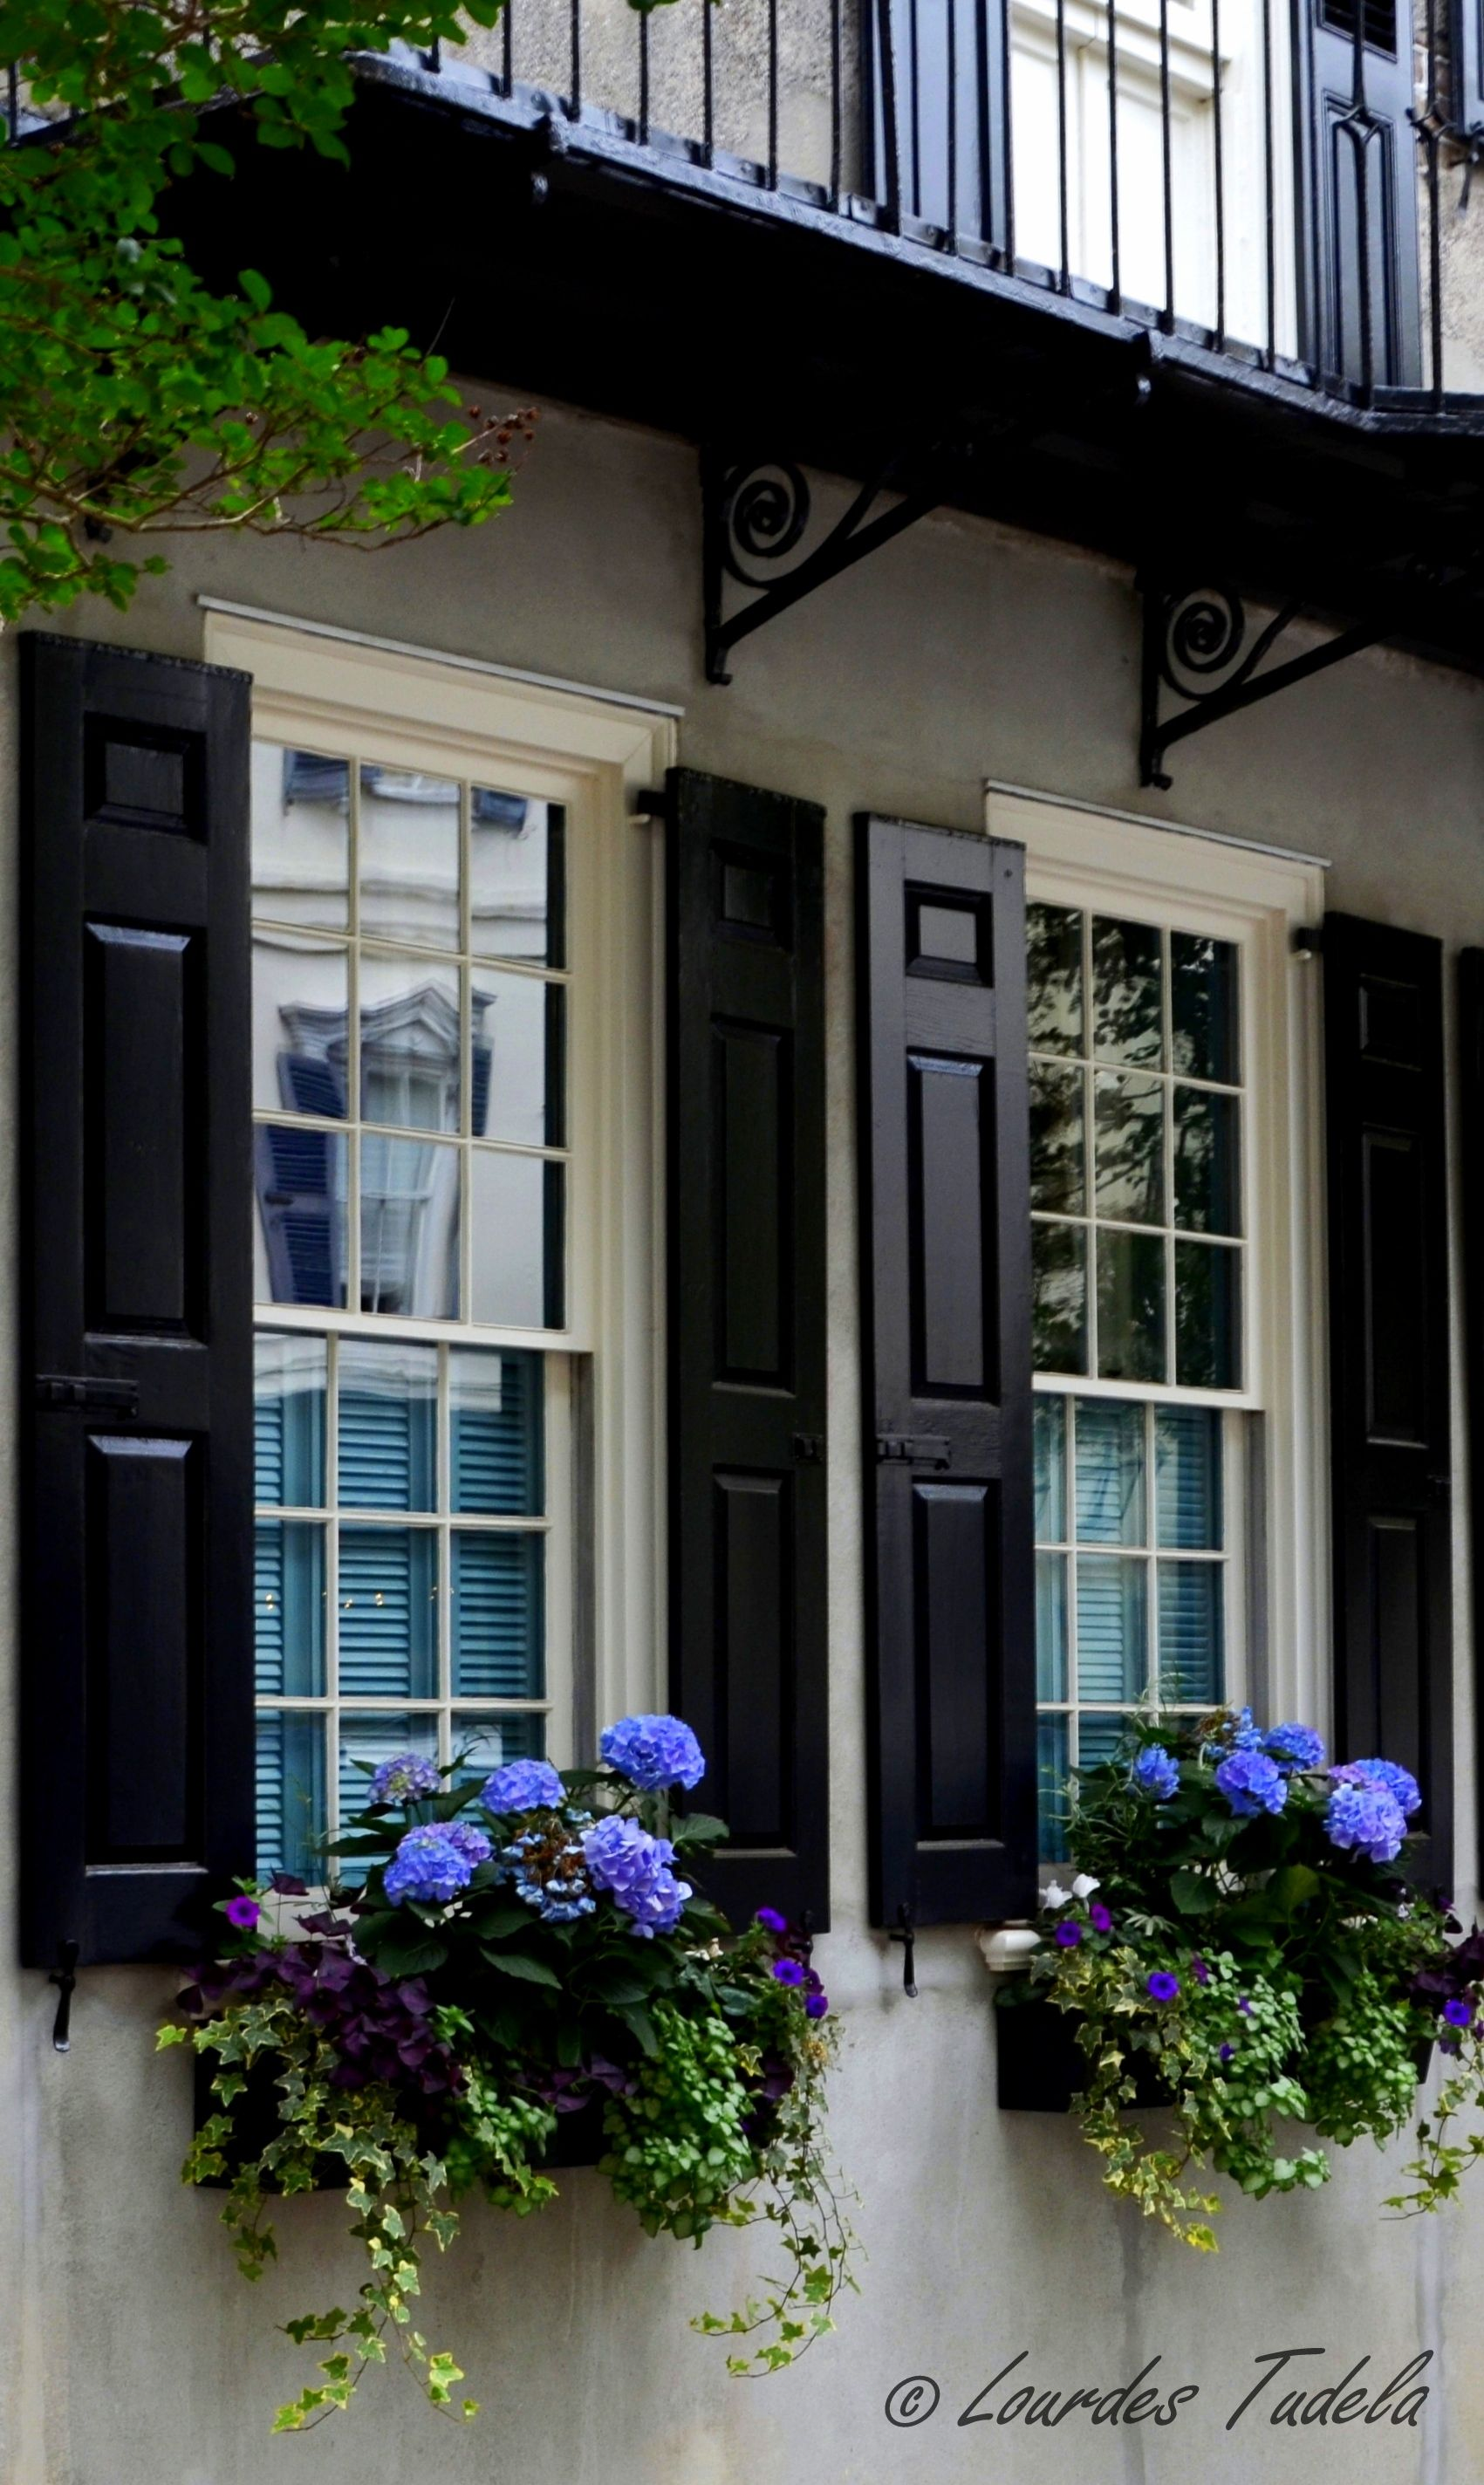 Gorgeous Window Boxes Full Of Hydrangeas, And Good Looking Shutters